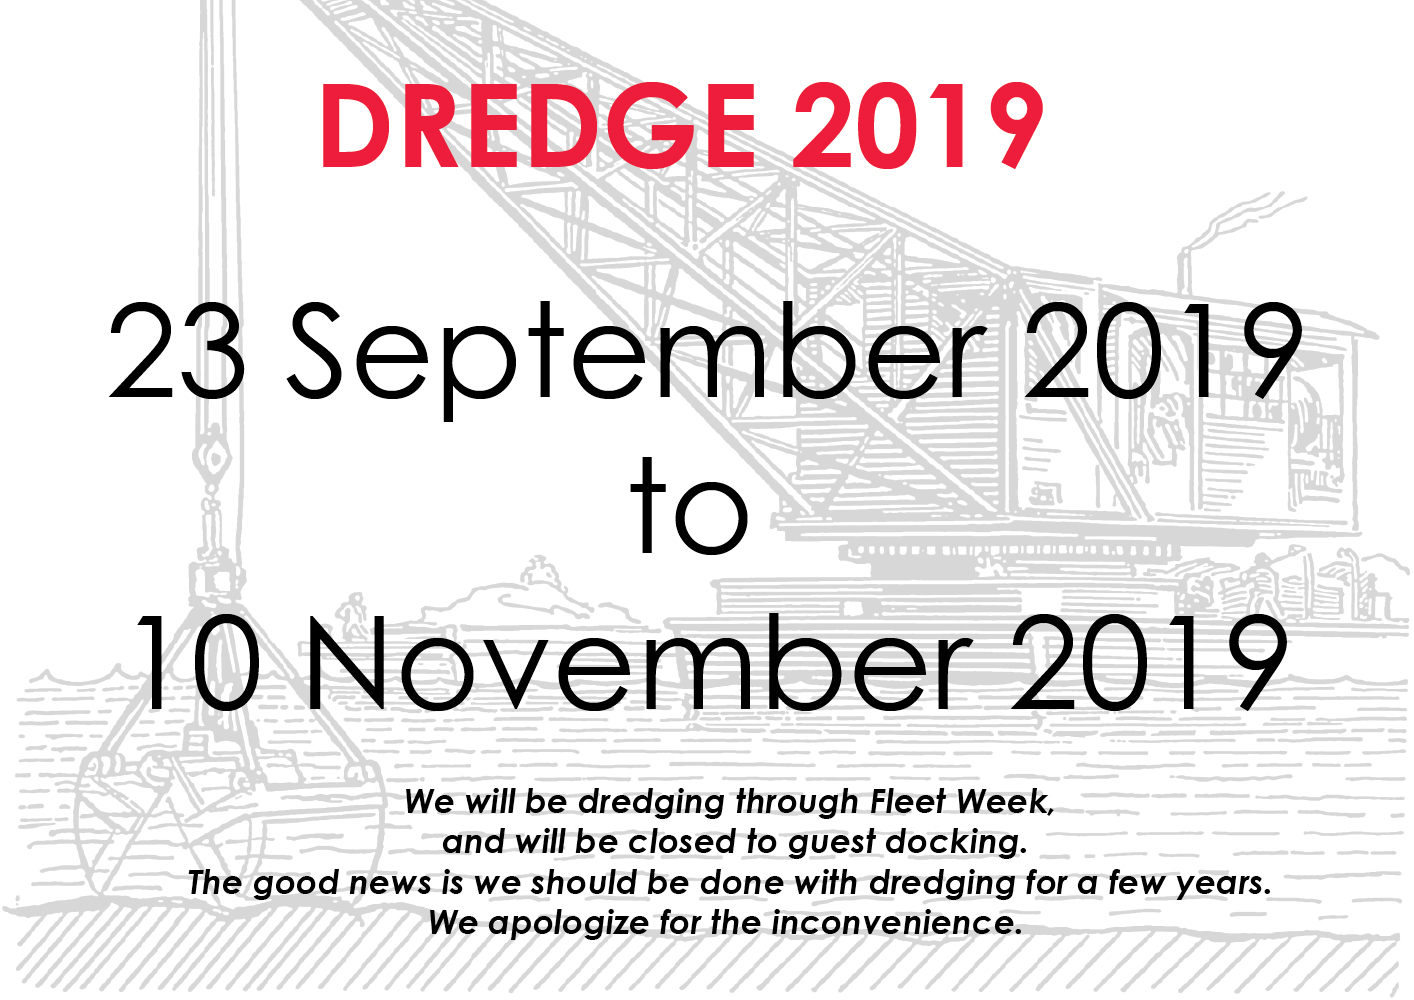 Dredge dates 23 SEP 19 to 15 NOV 19. We will be closed for guest docking during Fleet Week.